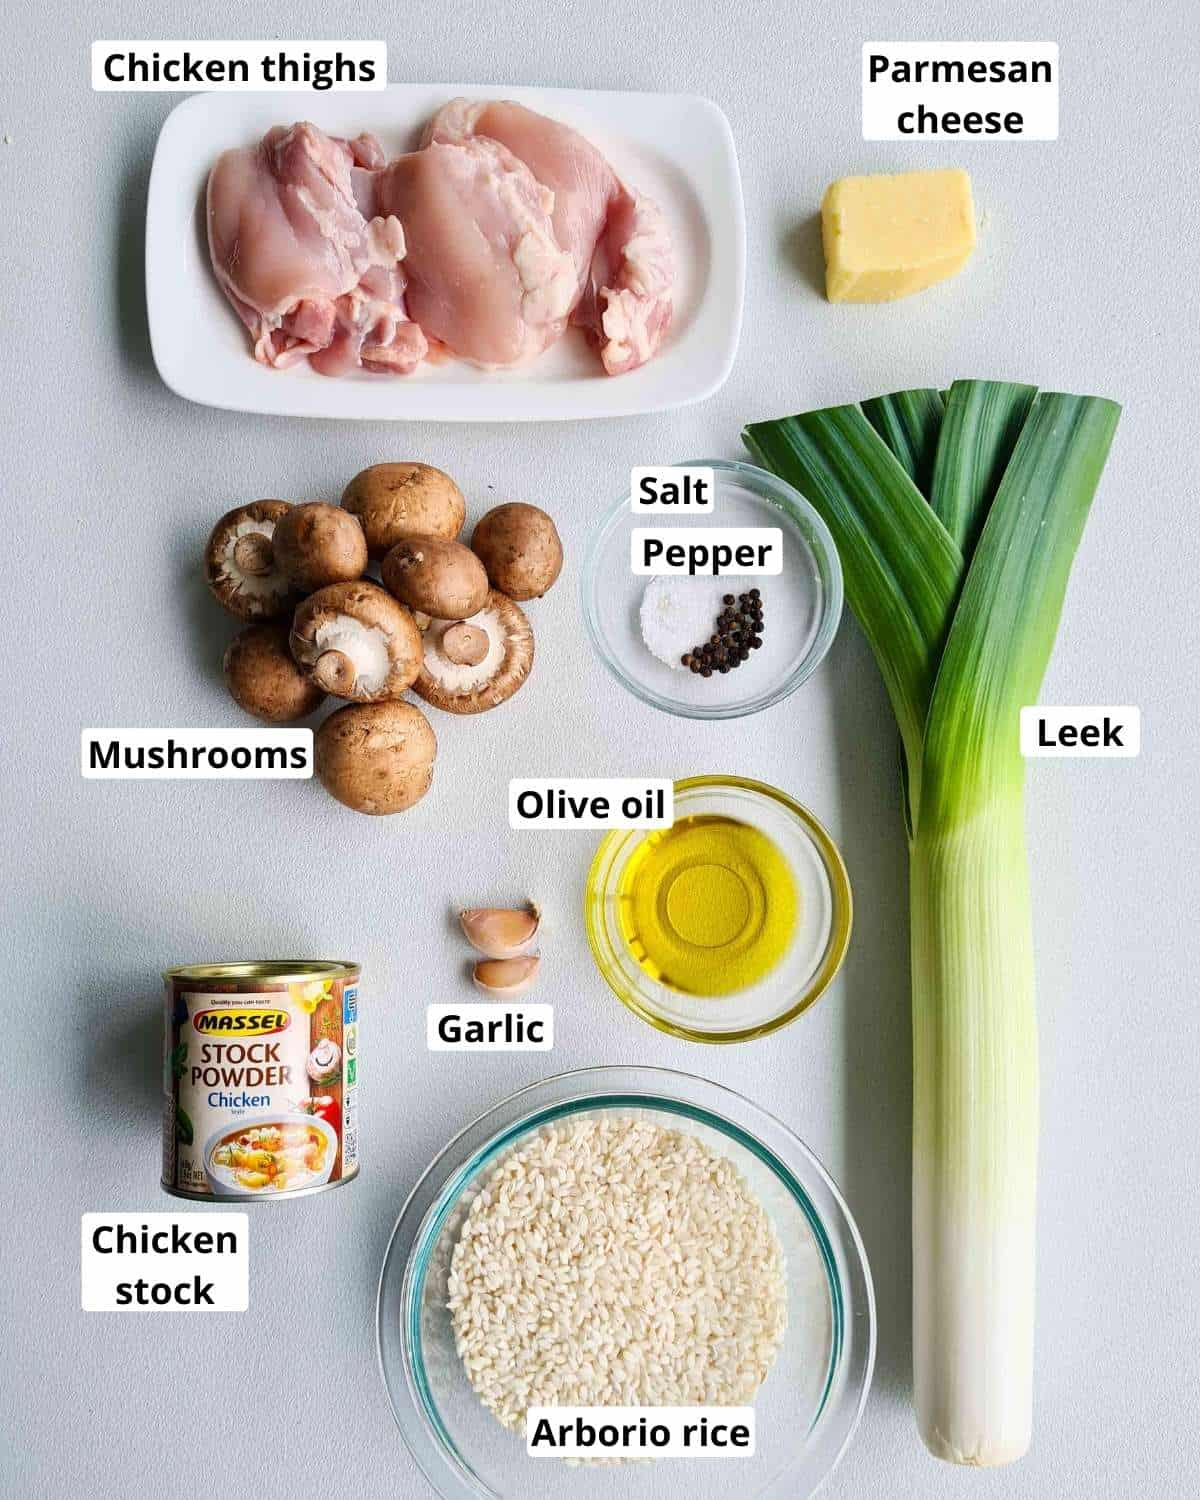 Ingredients required to make this recipe